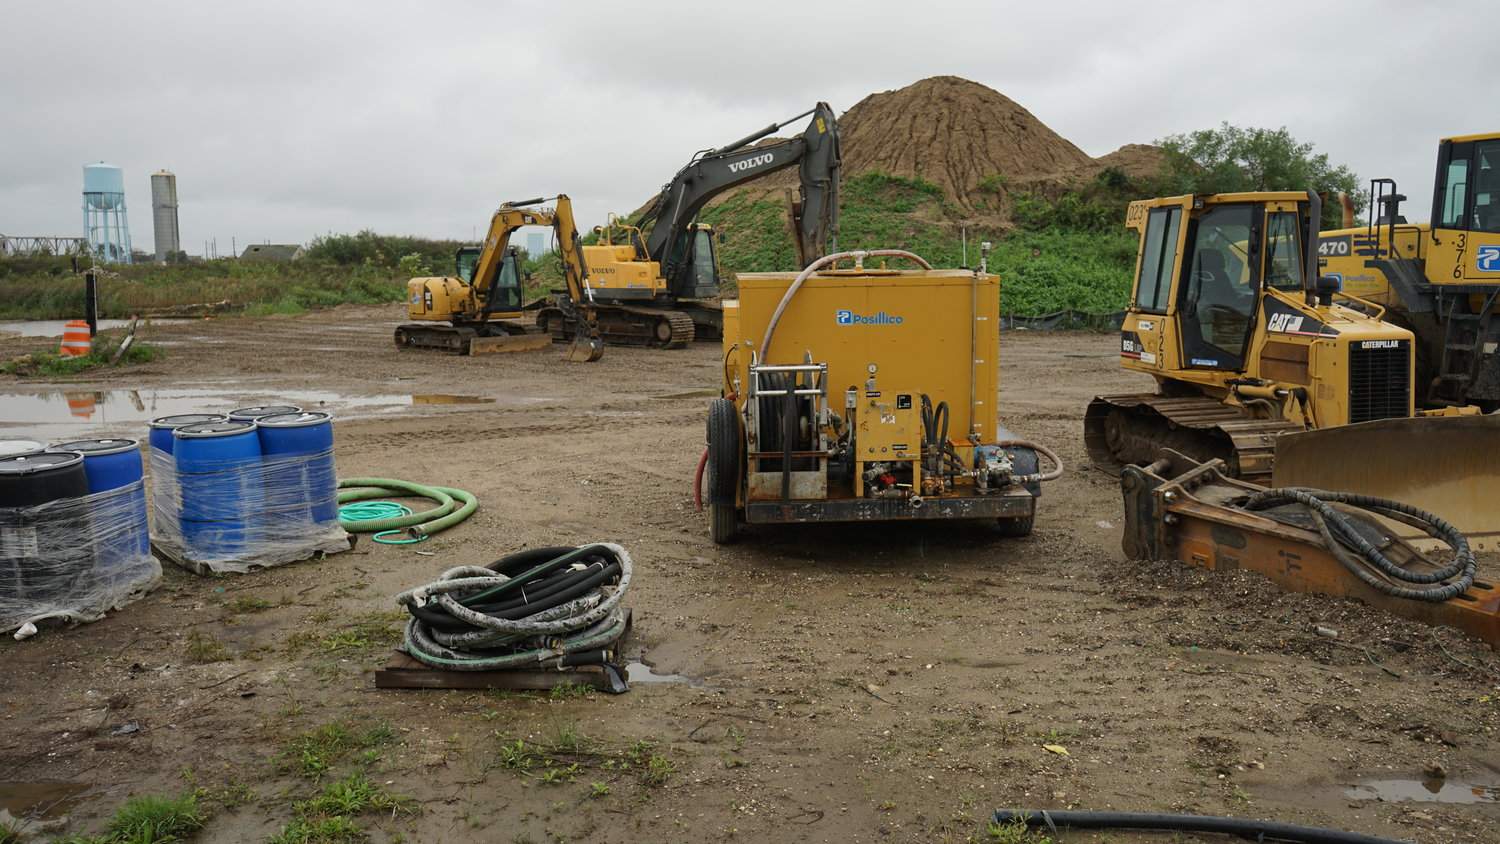 Soil cleanup at the former Cibro Petroleum site is slated to begin in mid-October, according to the State Department of Environmental Conservation.